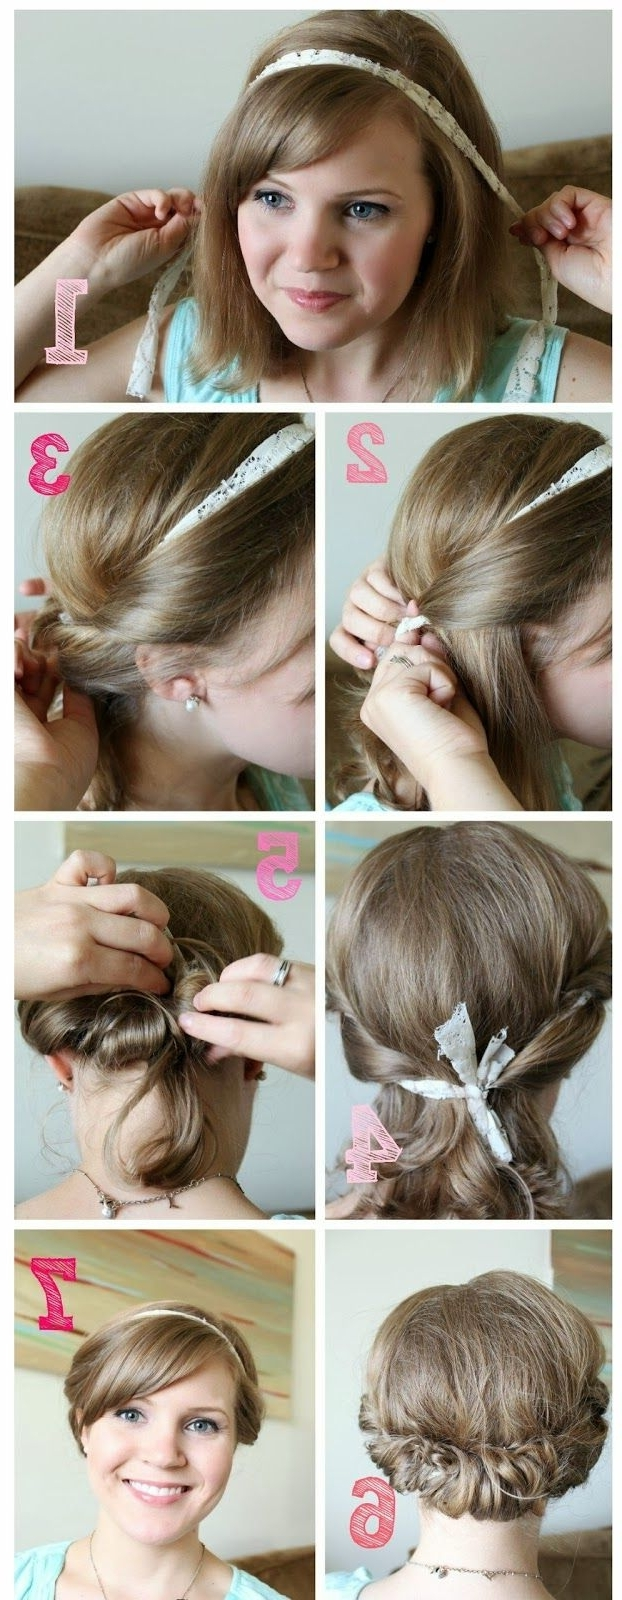 76 Best •• Hair And Beauty •• Images On Pinterest | Coiffure Facile In Super Easy Updos For Short Hair (View 12 of 15)